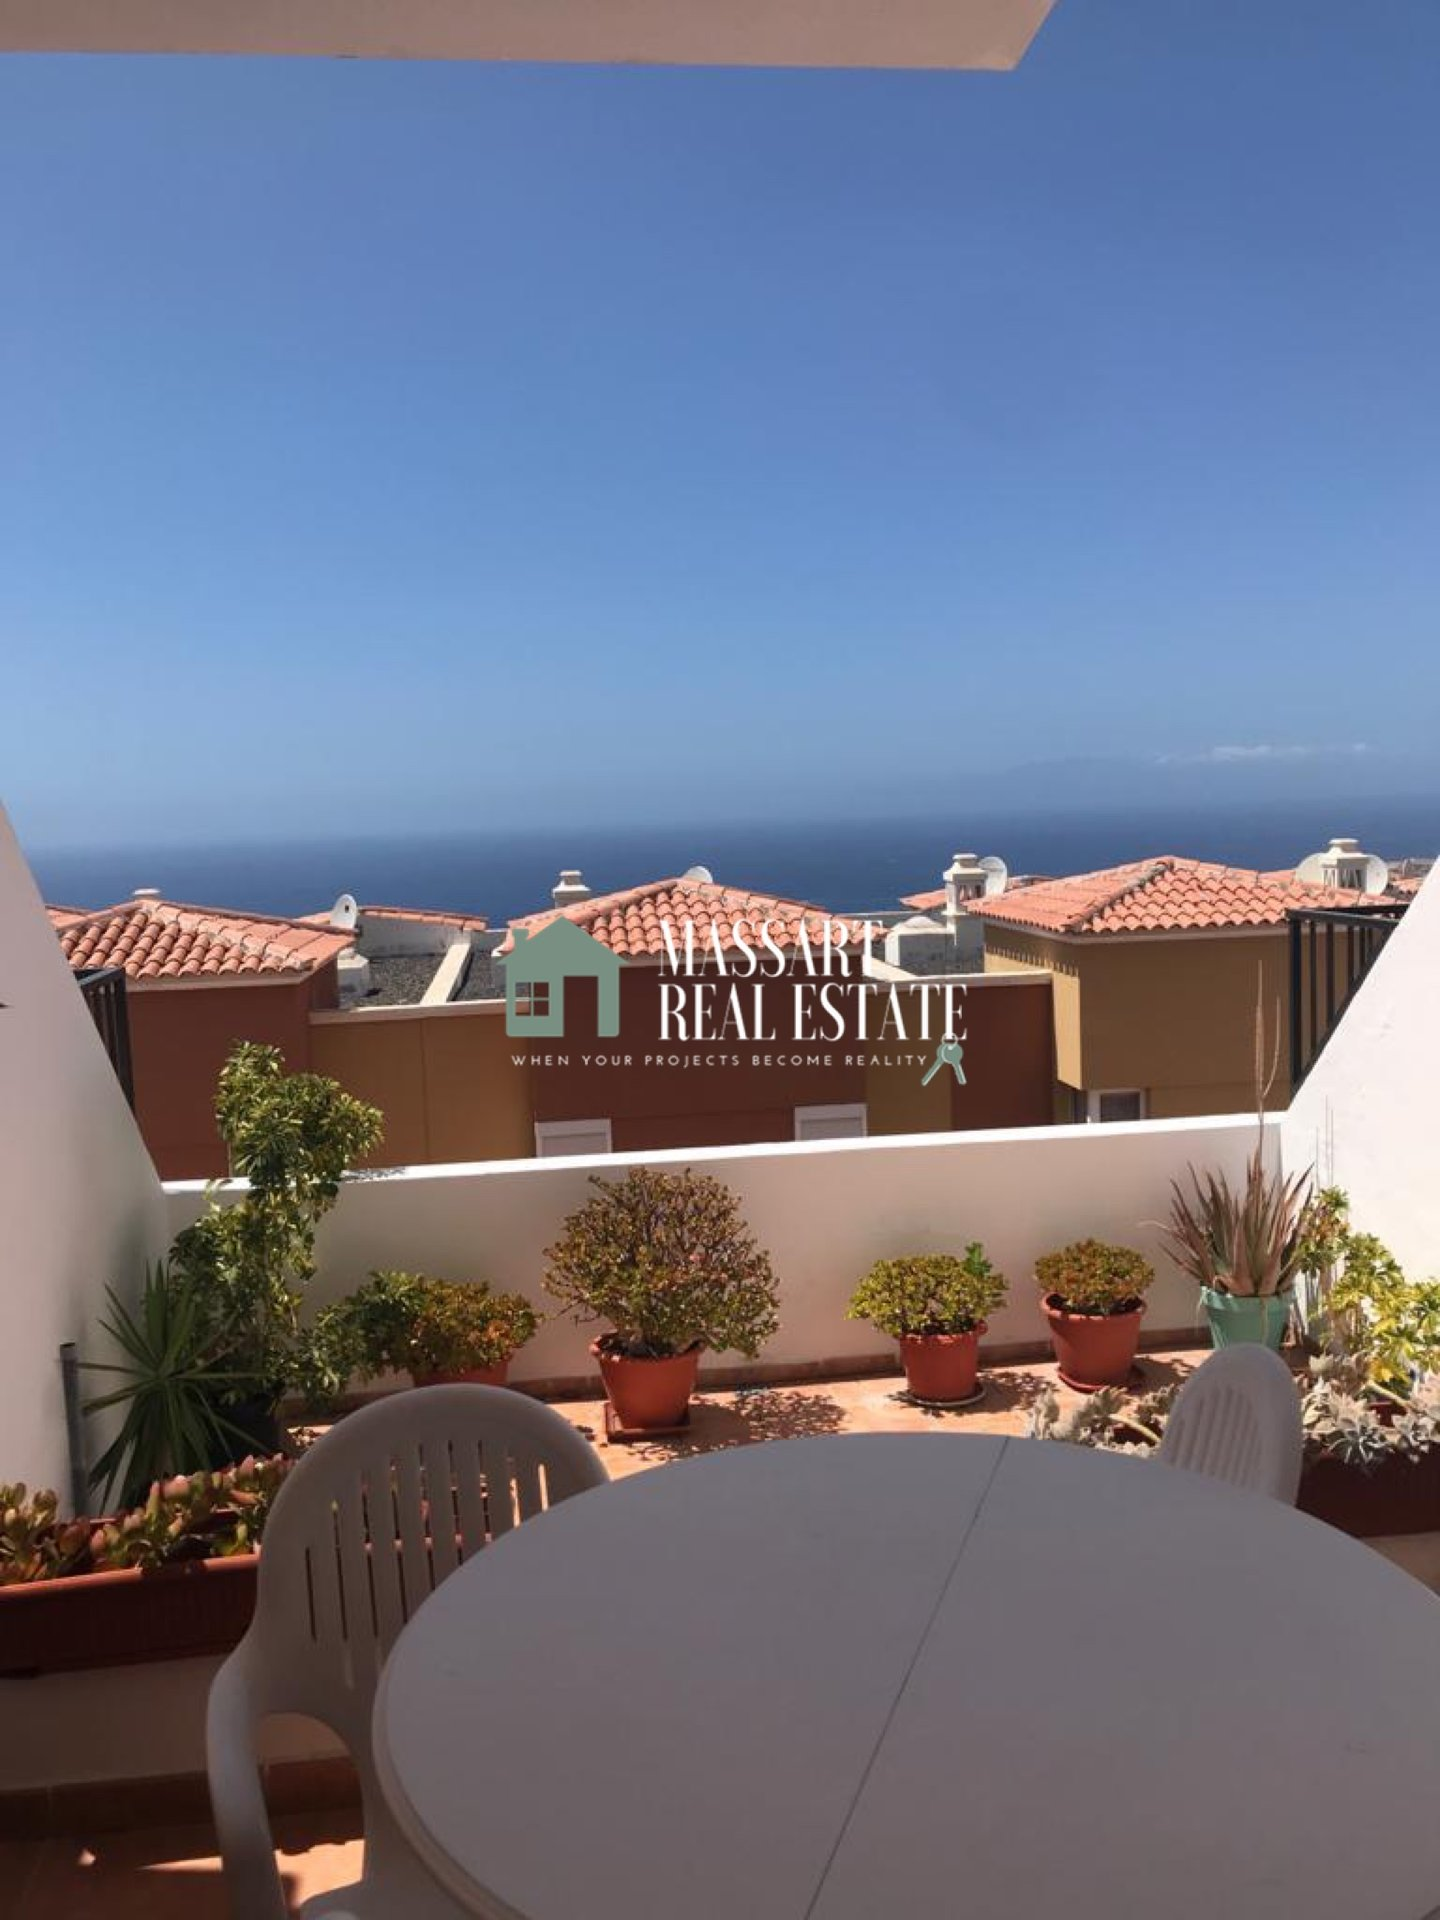 Fully furnished duplex for rent in the popular area of Roque del Conde (Adeje), characterized by offering dreamy sea views.